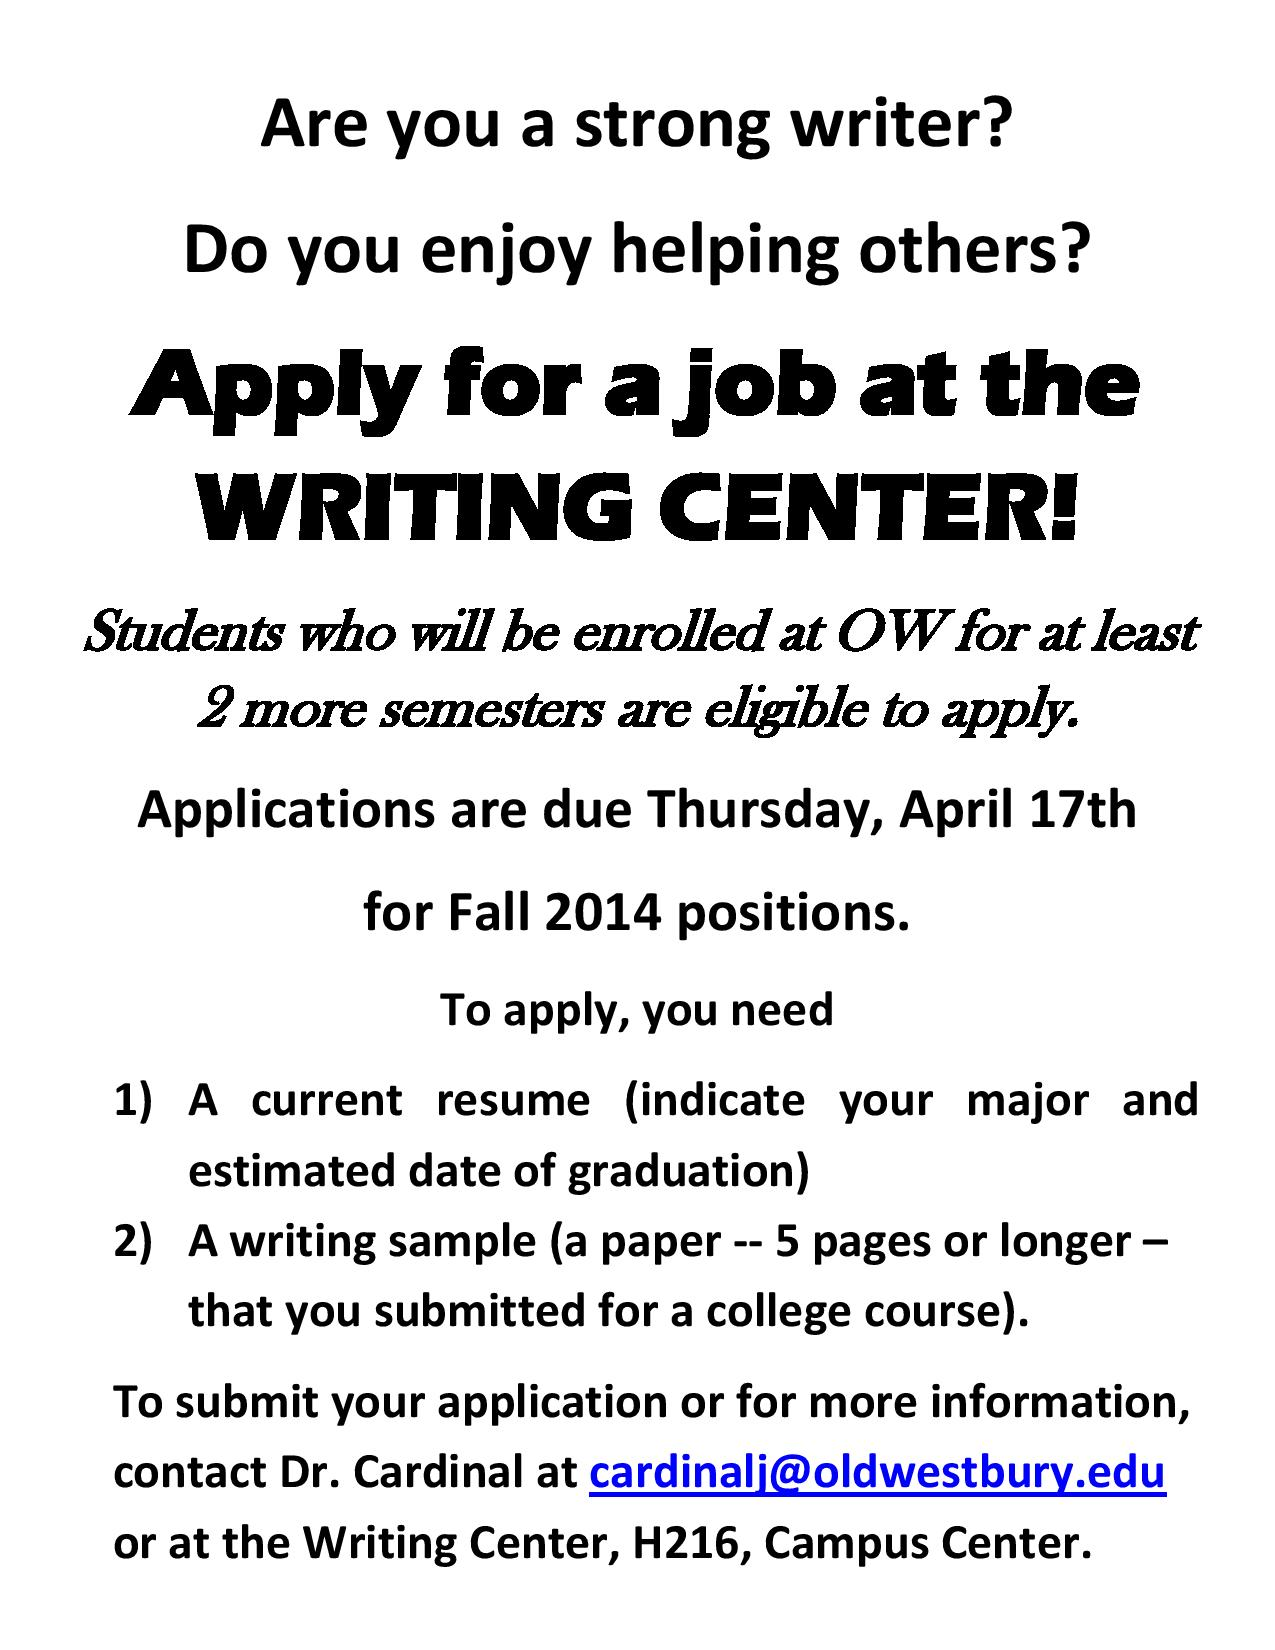 Writing Center Now Hiring For Fall 2014 Old Westbury